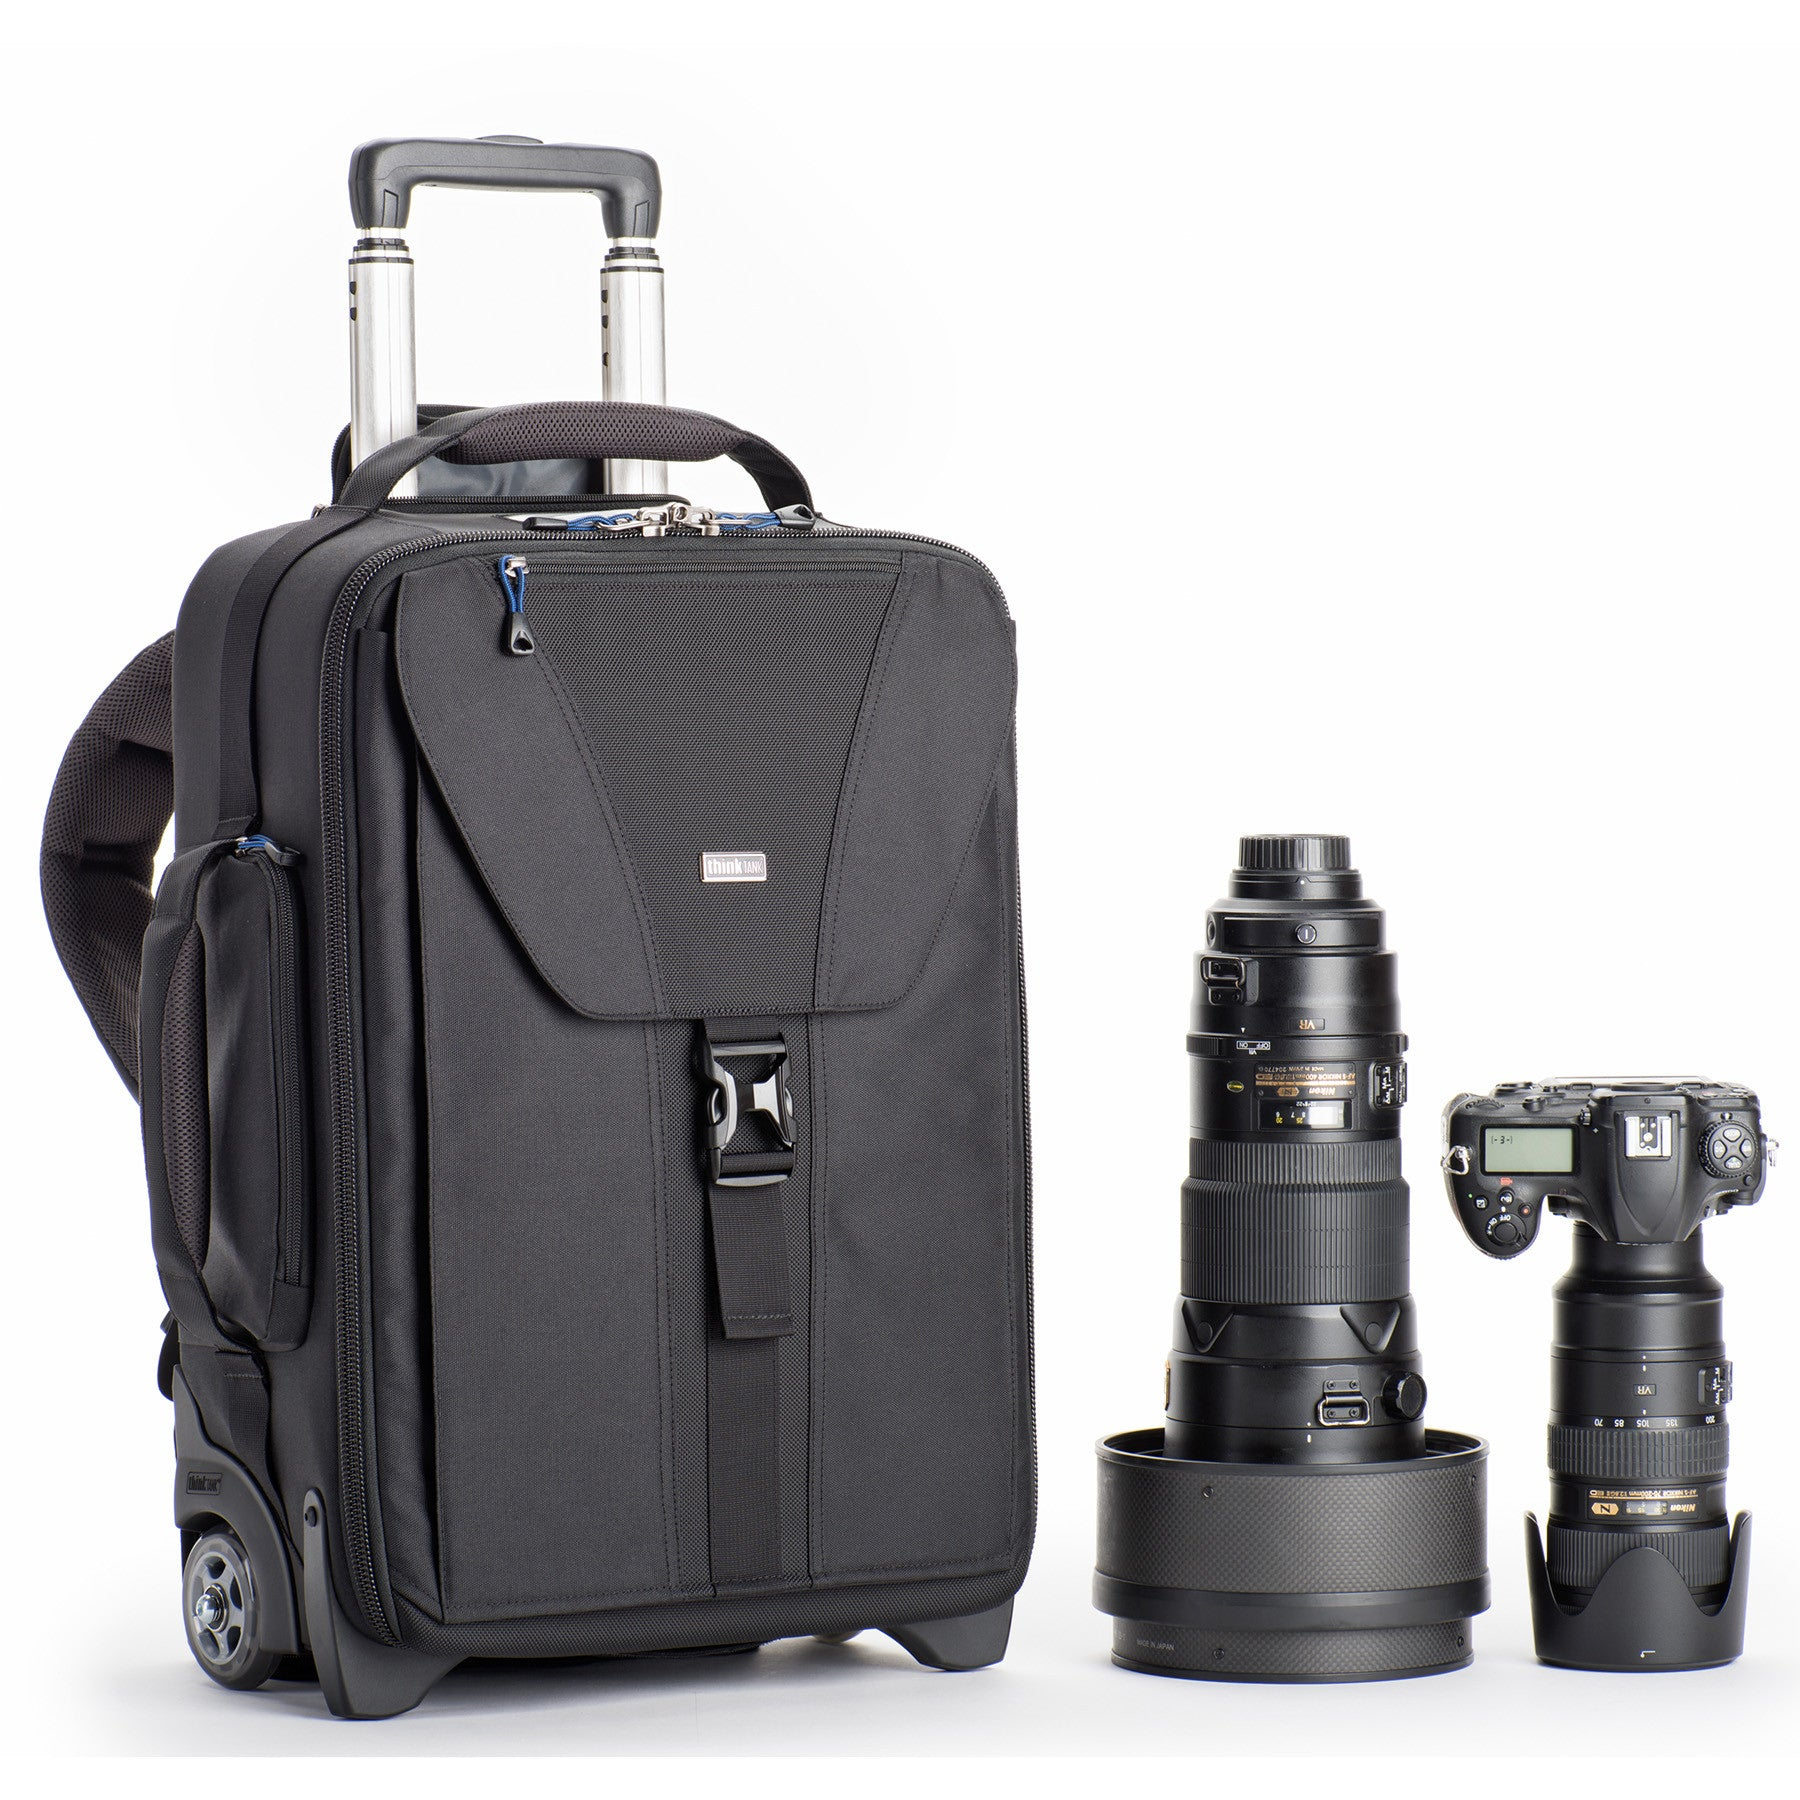 Updated Airport TakeOff V2.0 Rolling Backpack Is 15% Lighter